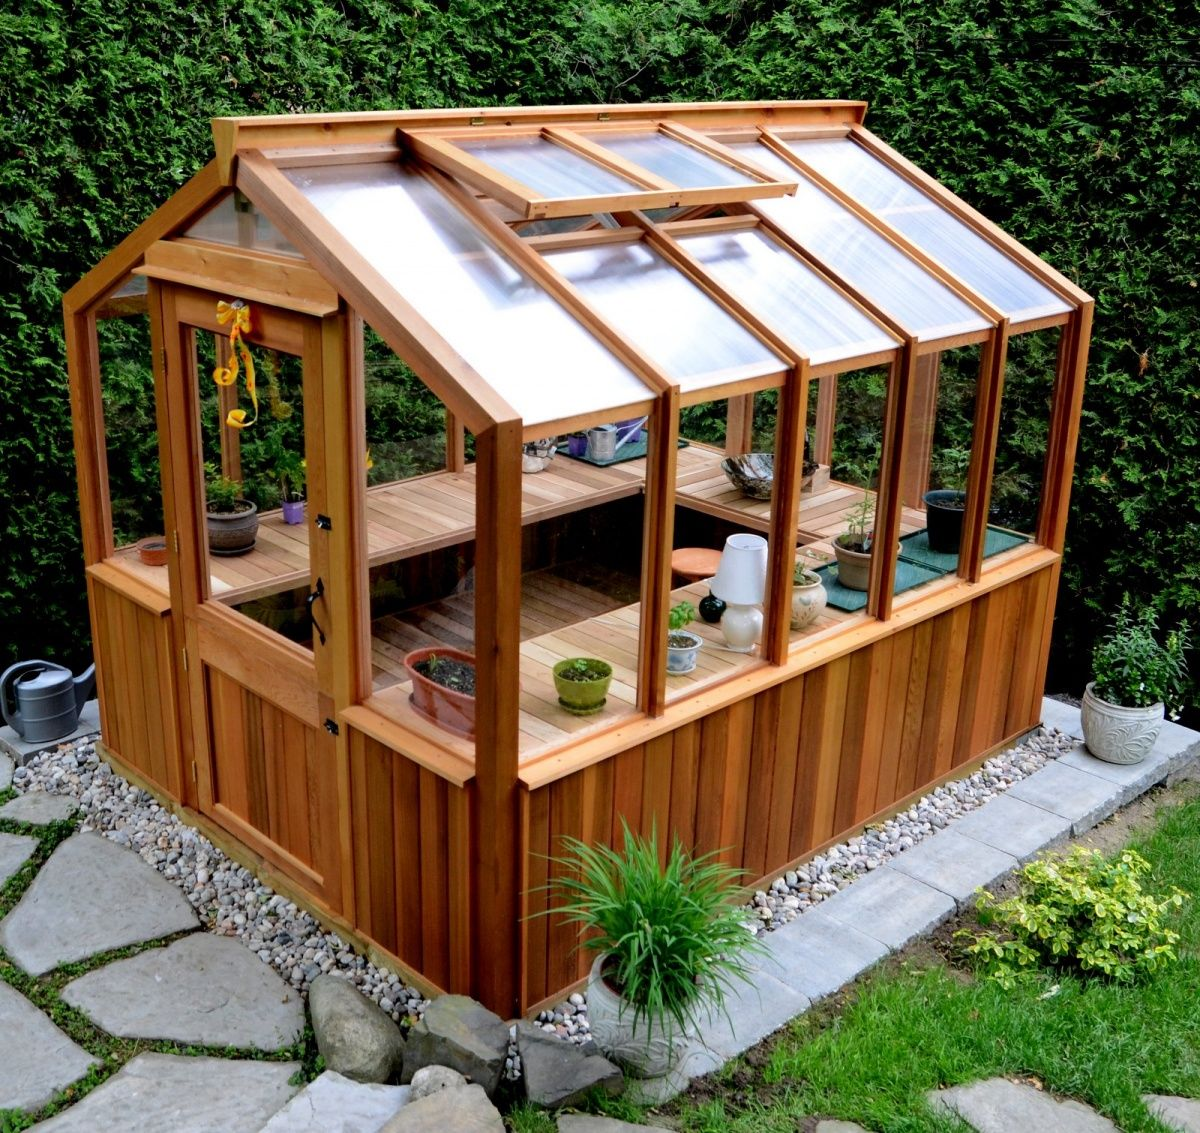 freestanding wood frame greenhouse by cedarbuilt makes a